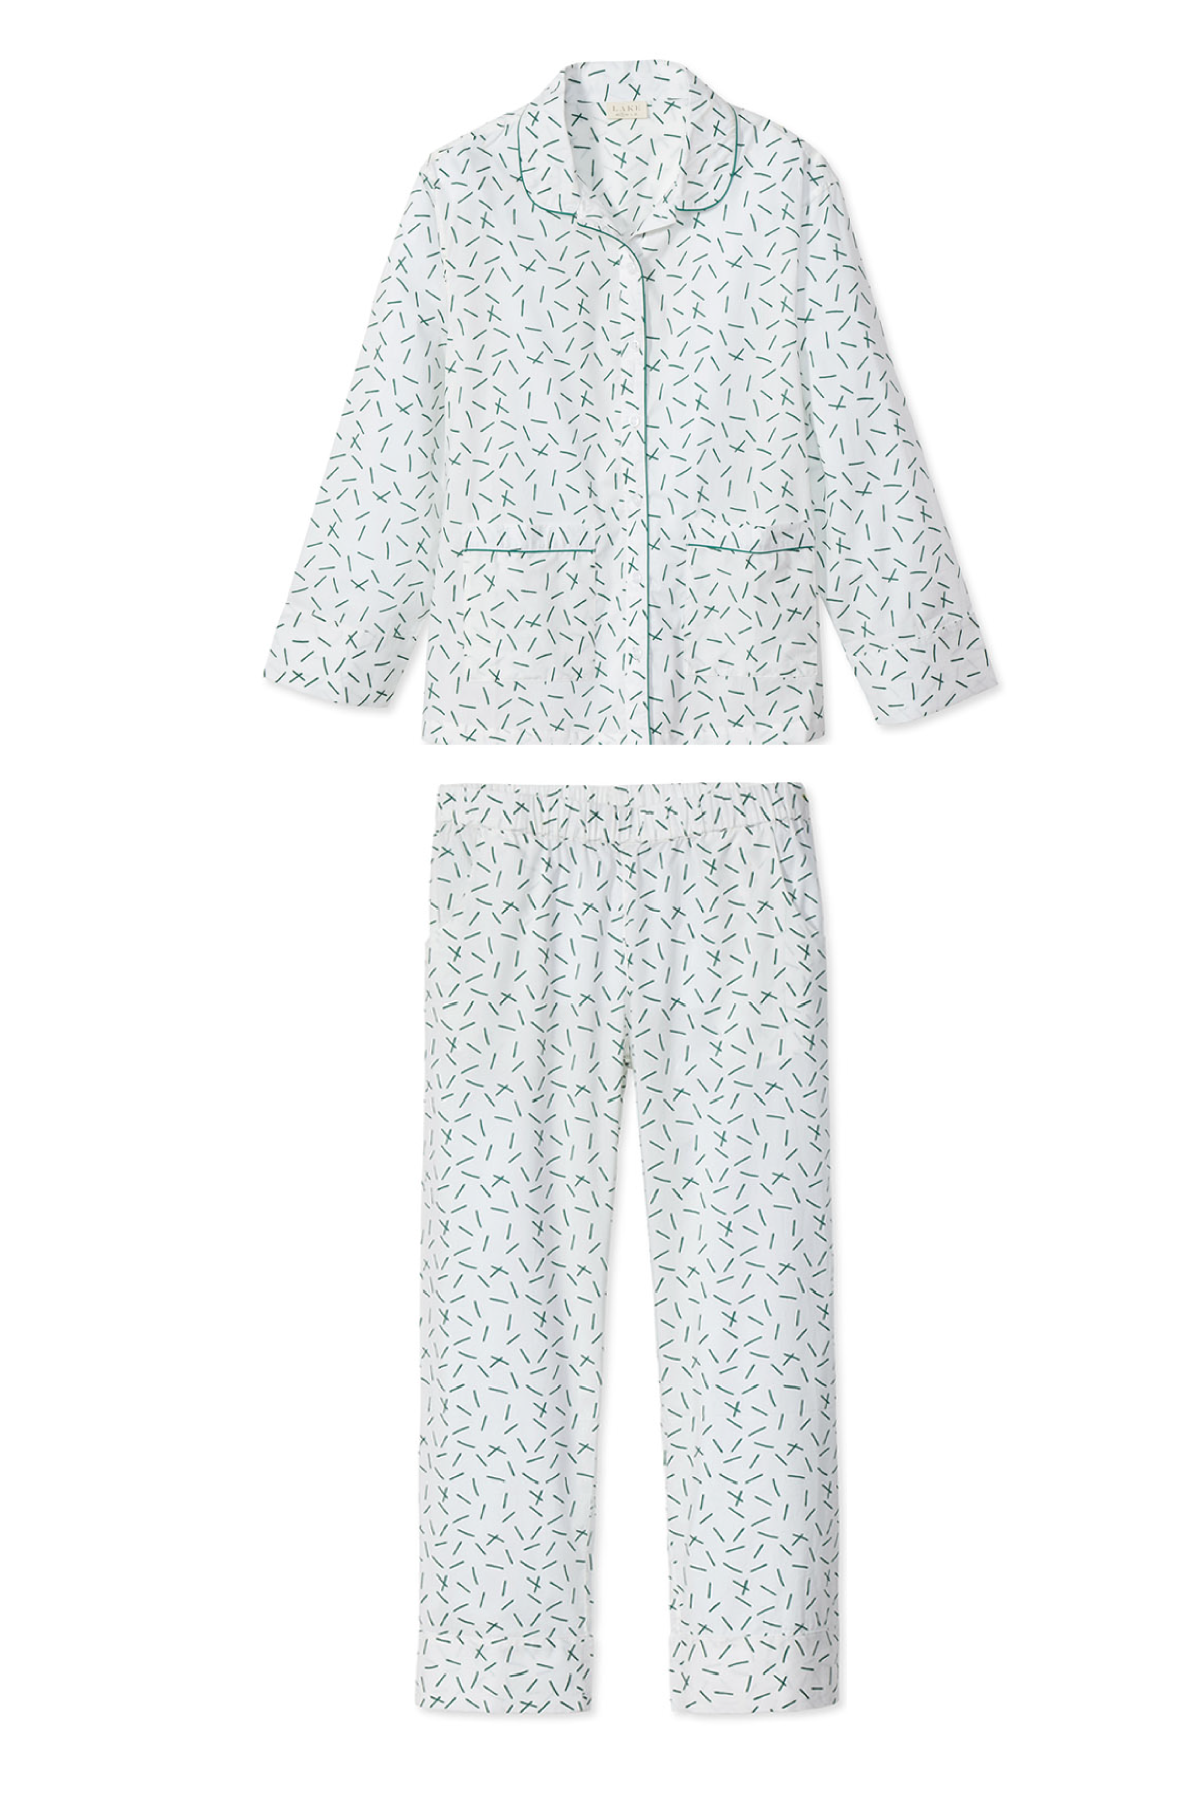 Poplin Pants Set in Hedge